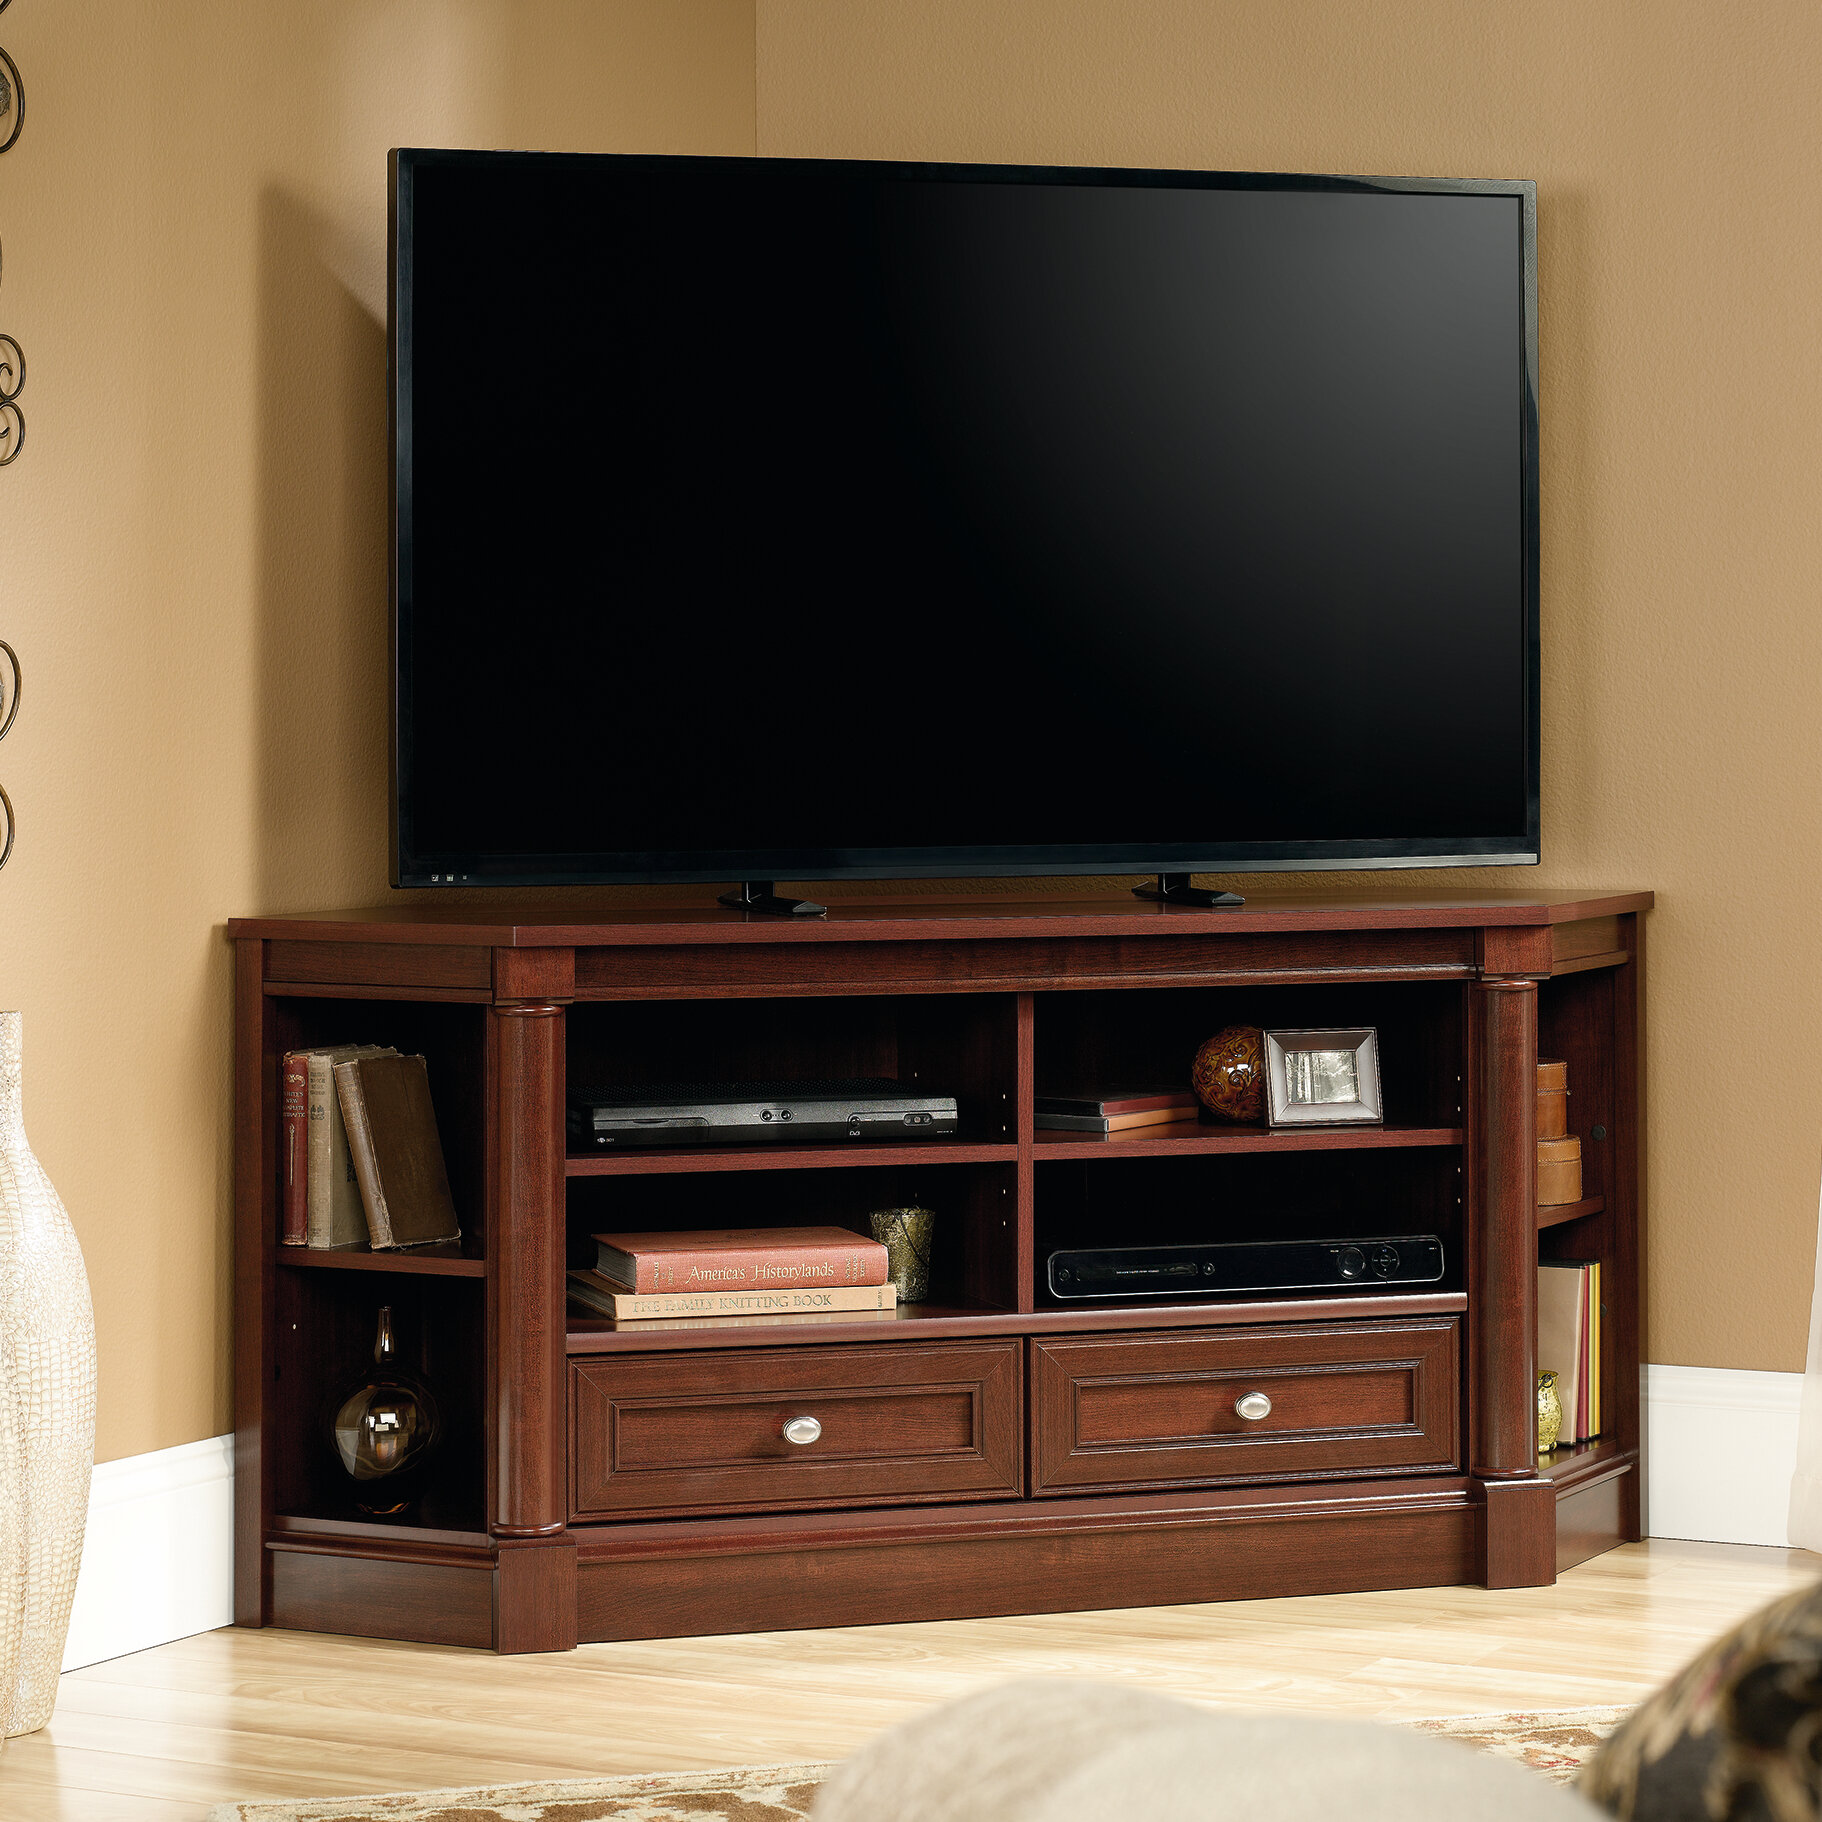 Three Posts Orviston Corner Tv Stand For Tvs Up To 60 Reviews Wayfair